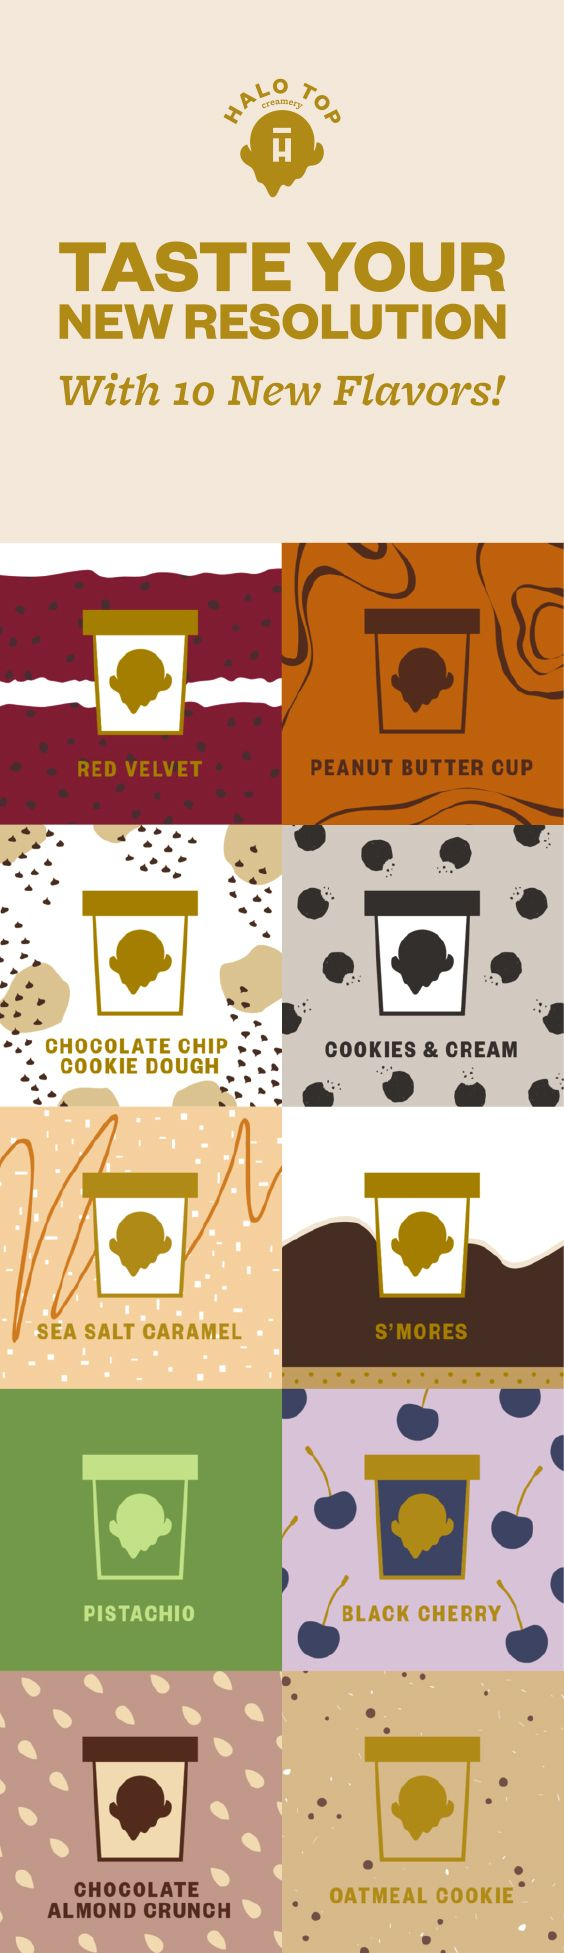 Time to taste your new resolution for 2017 without all the guilt! Halo Top Ice Cream is perfect for all goals and gains! Try one of the new flavors to choose your favorite!